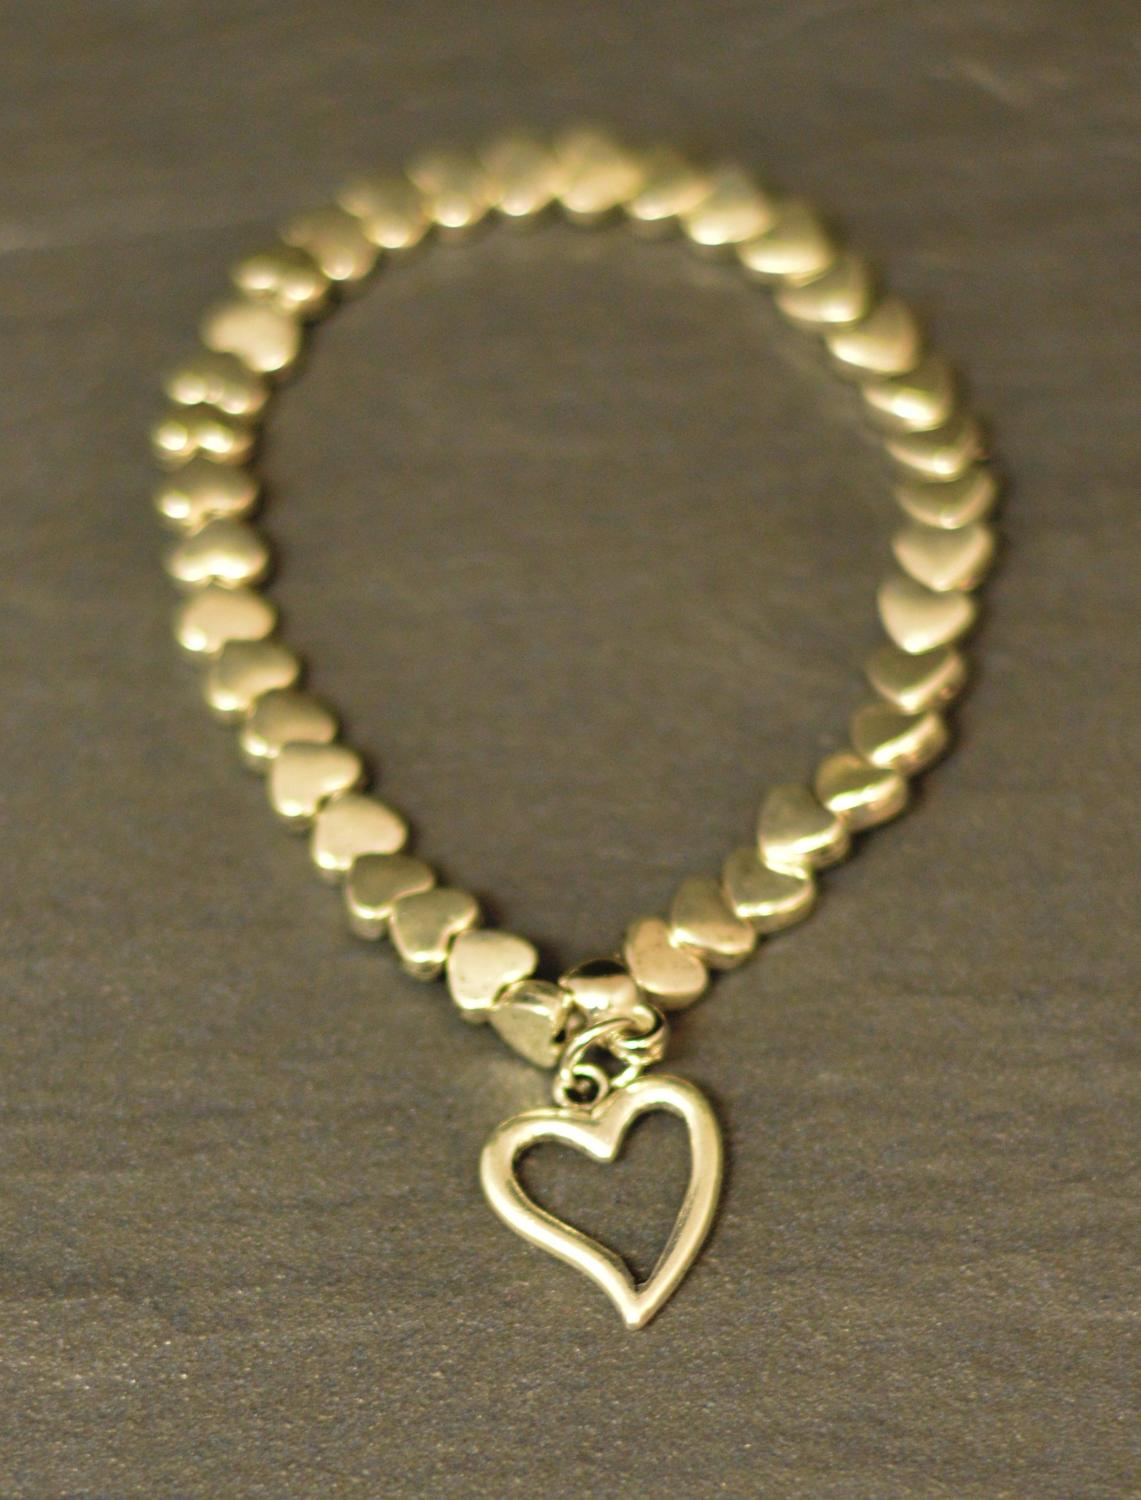 Heart Outline Charm on Elasticated Bracelet